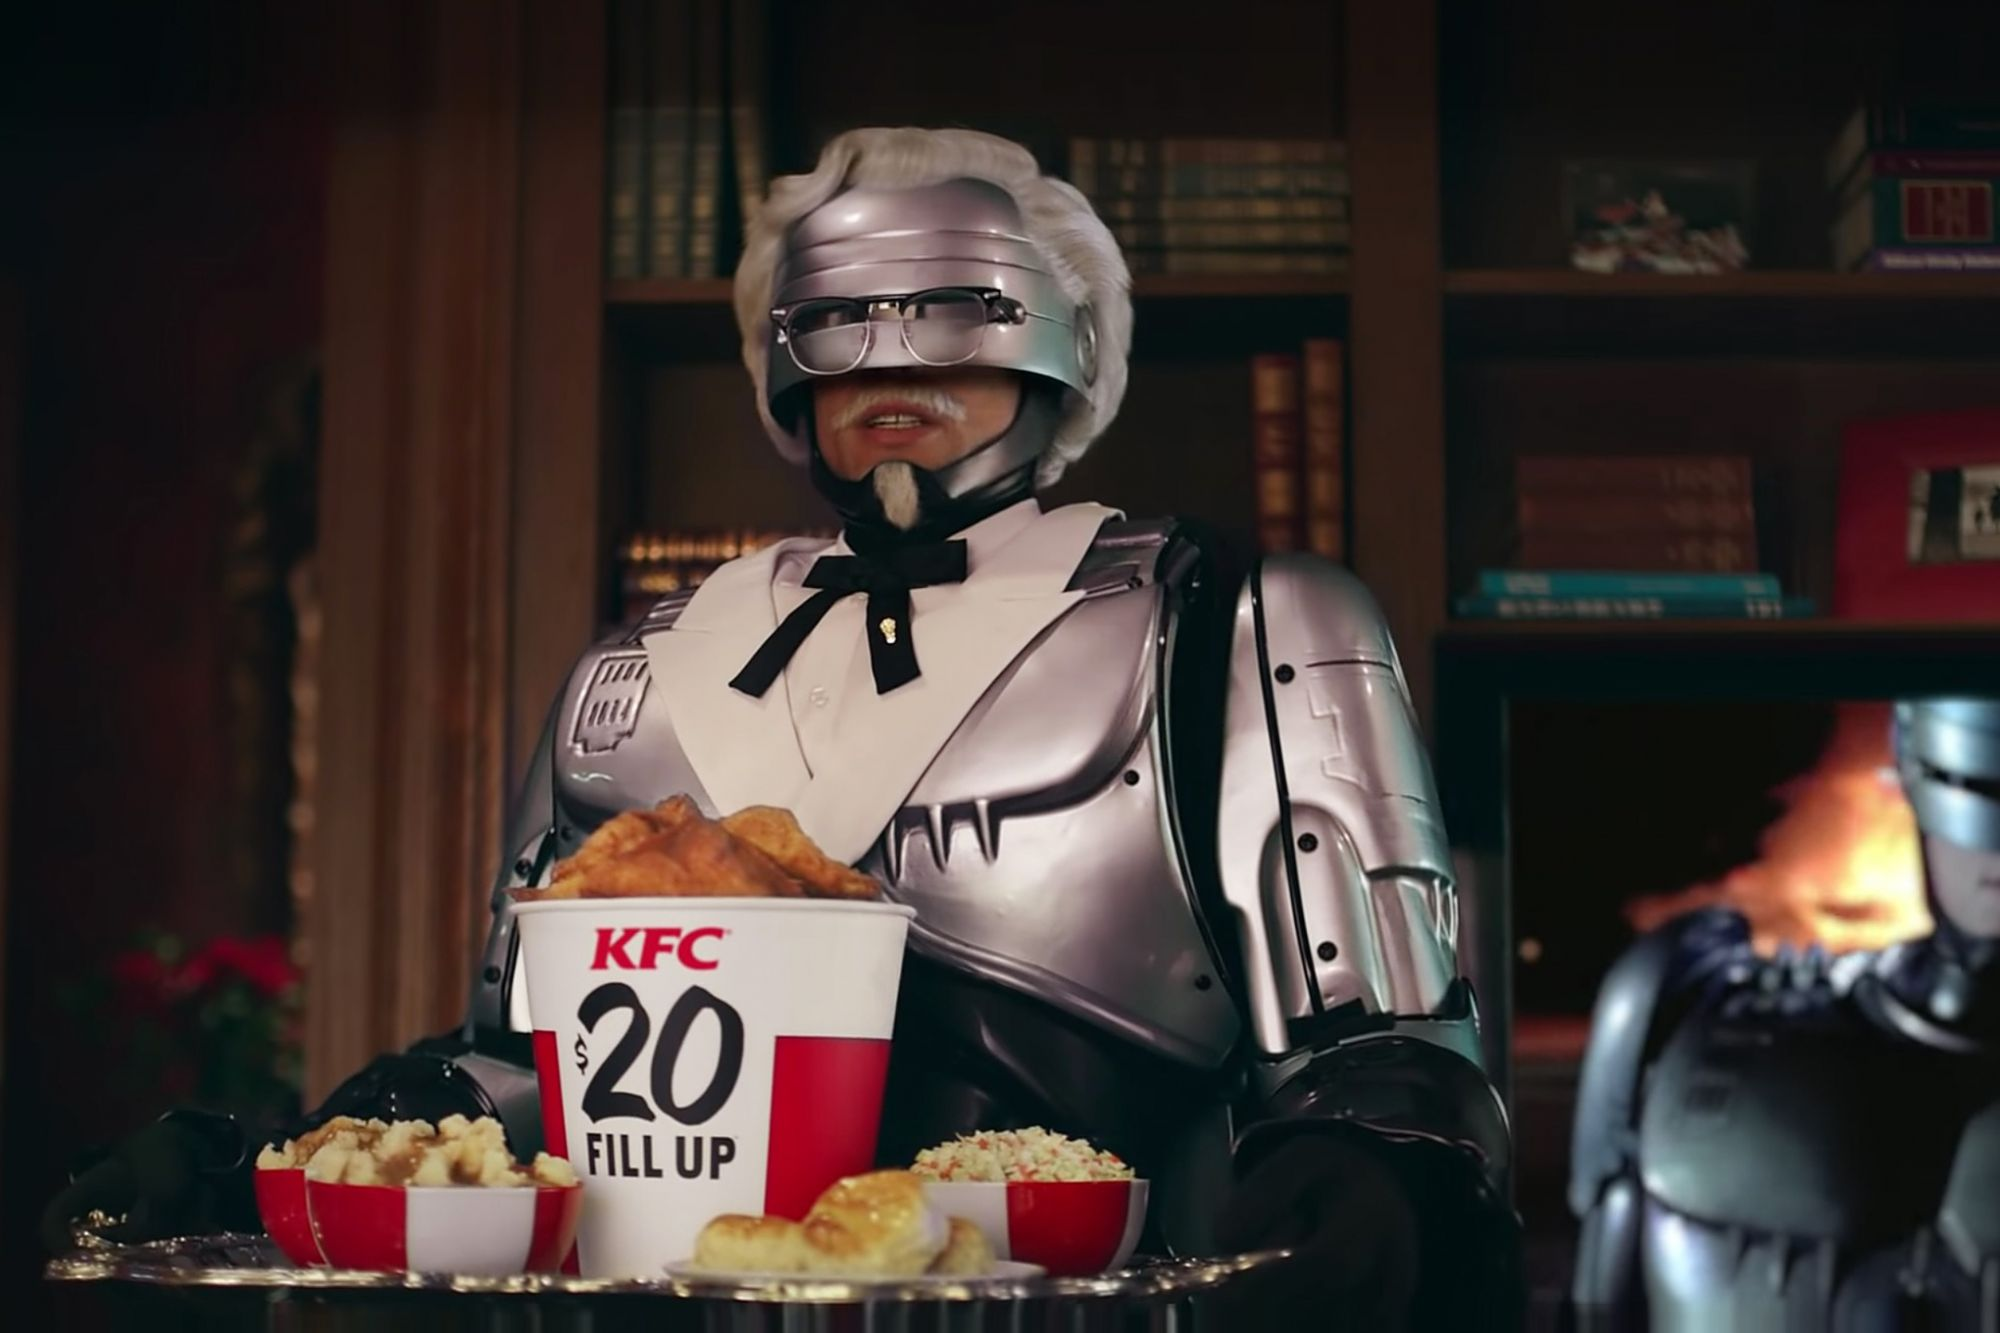 , KFC Enlists RoboCop to Protect Secret Recipe in New Campaign, Saubio Making Wealth